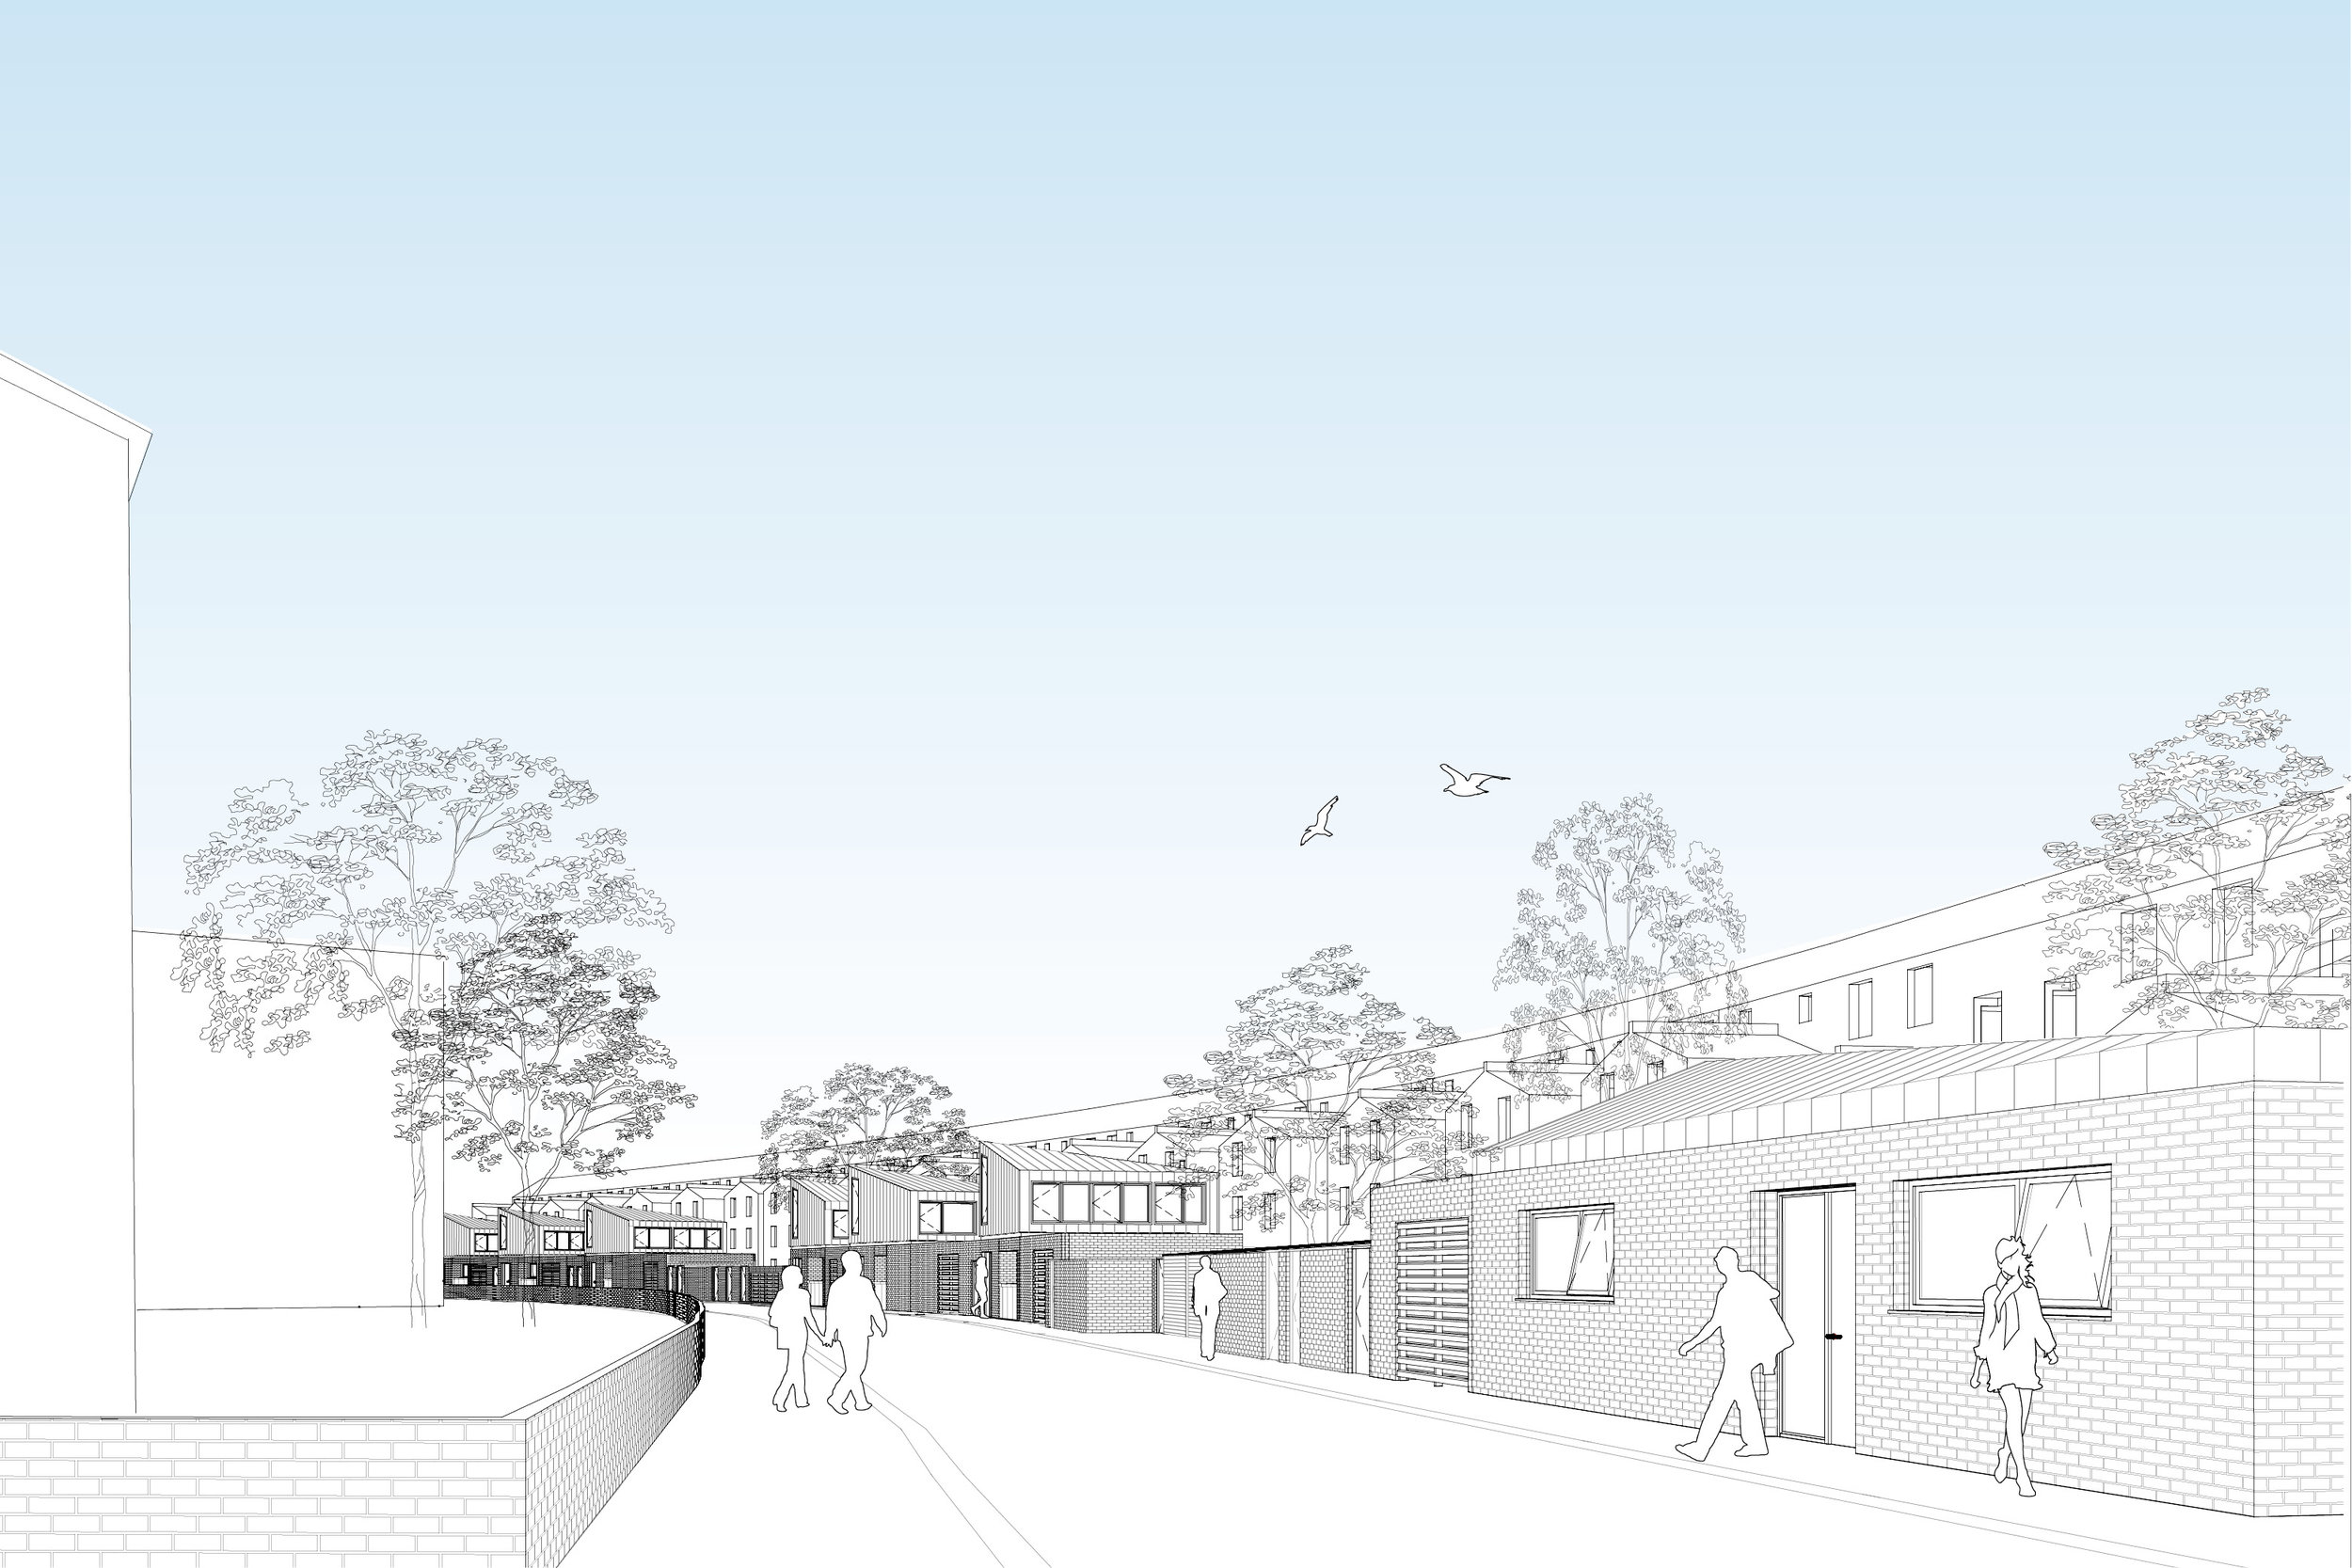 Visual of Streetscape at Social Housing Development in Hackney